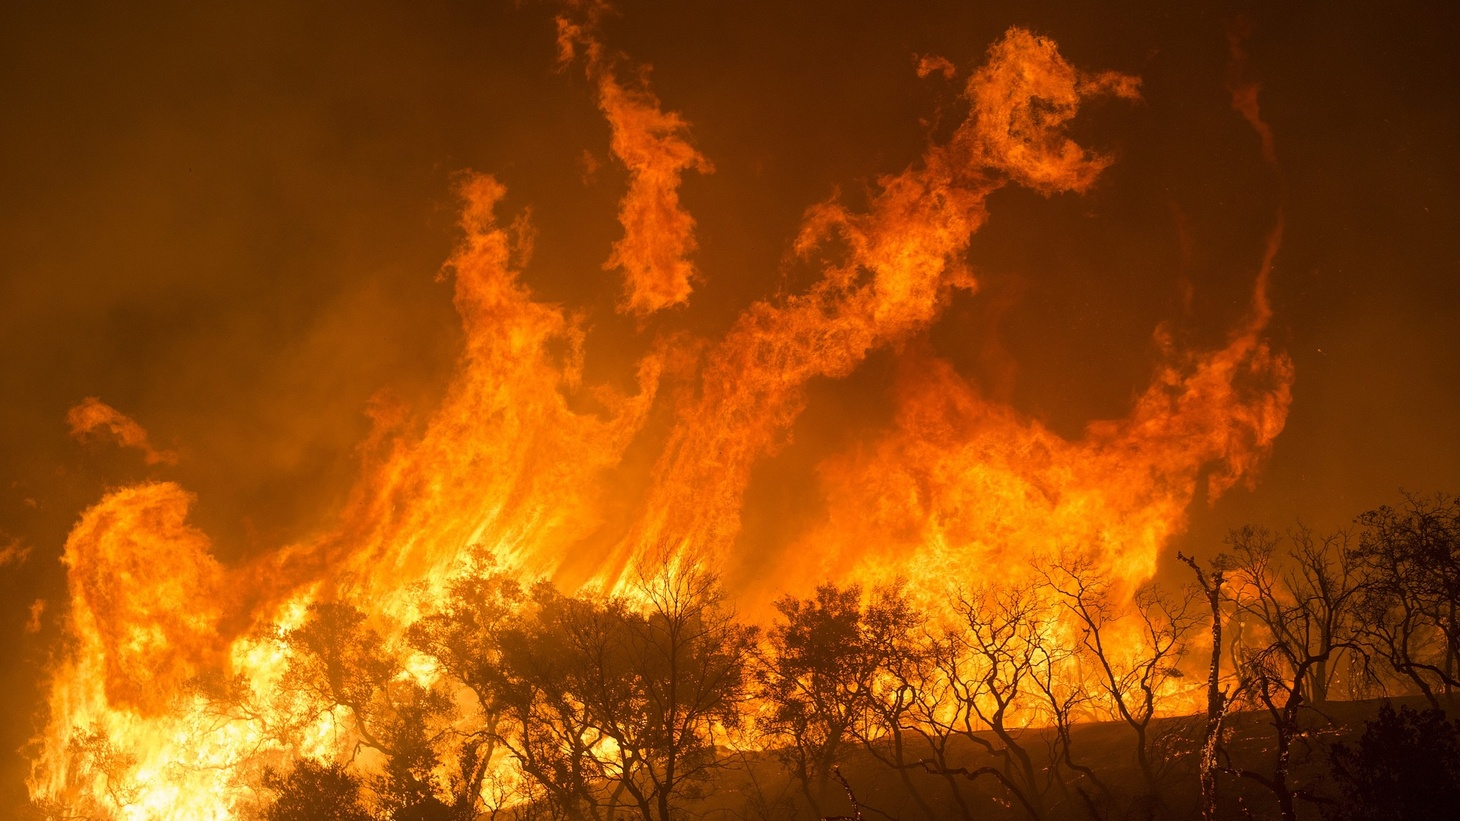 A wildfire at Los Padres National Forest in California.